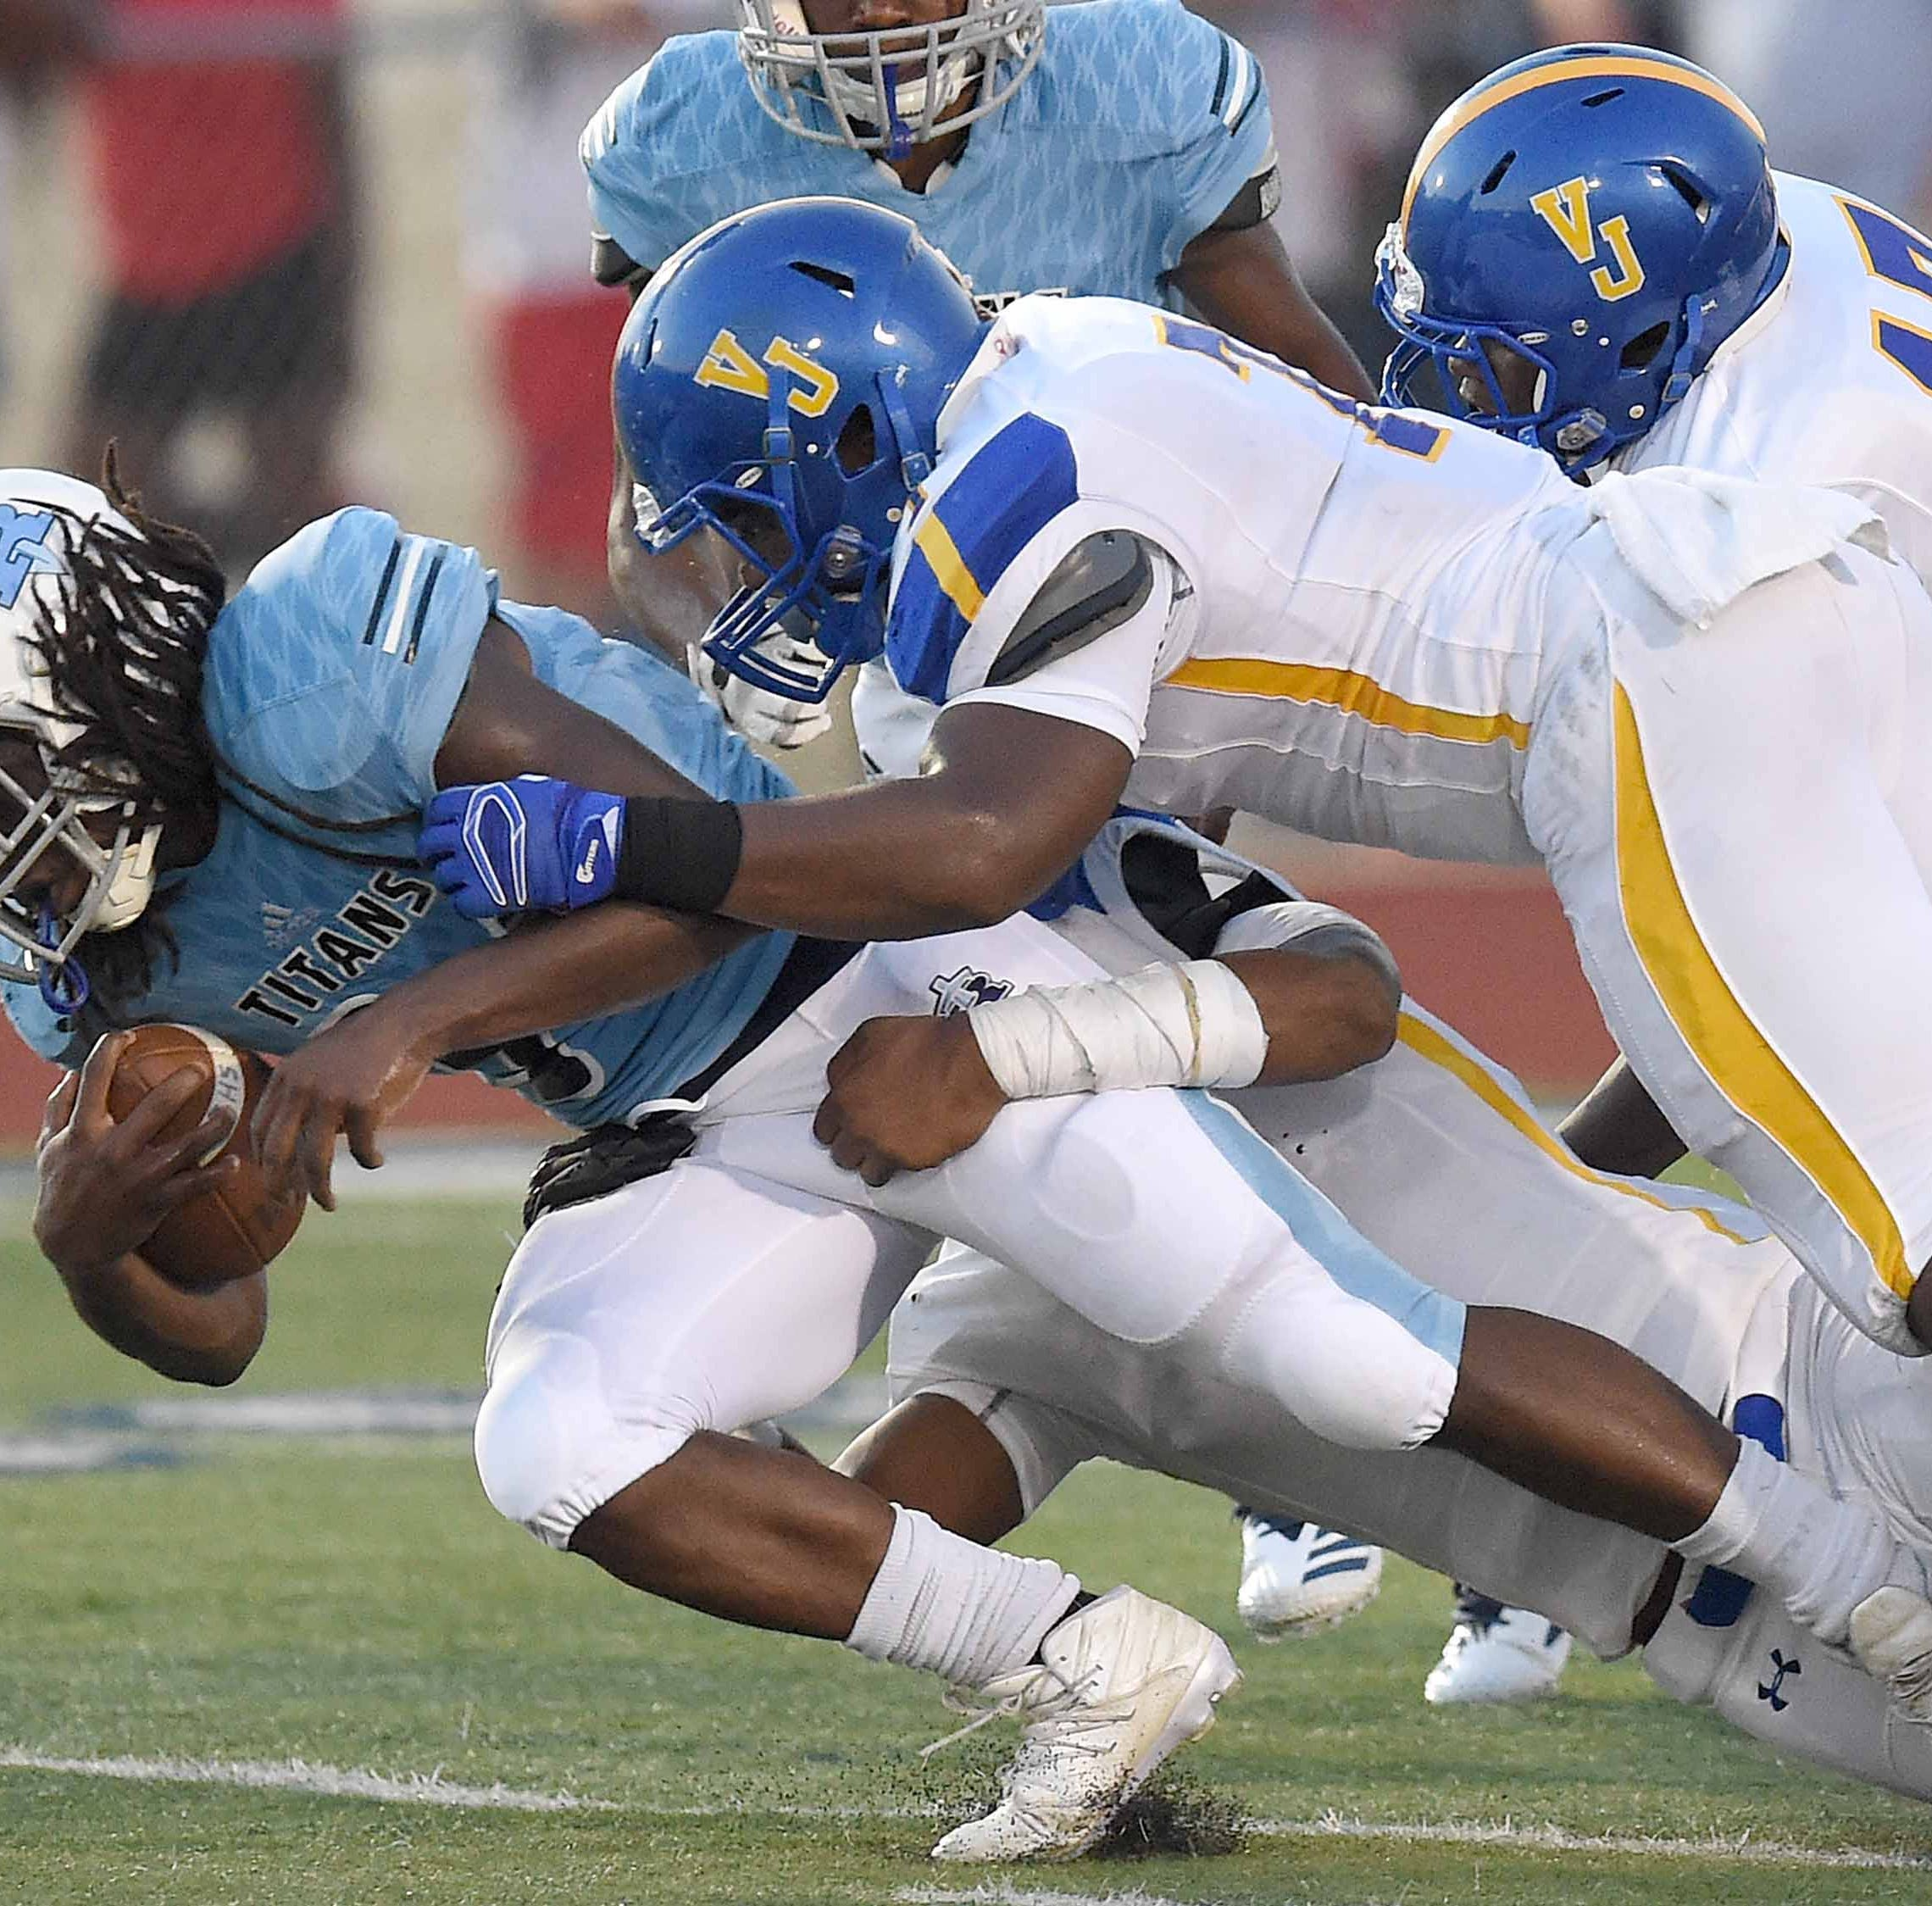 Mississippi high school football scores, news, updates from Week 1